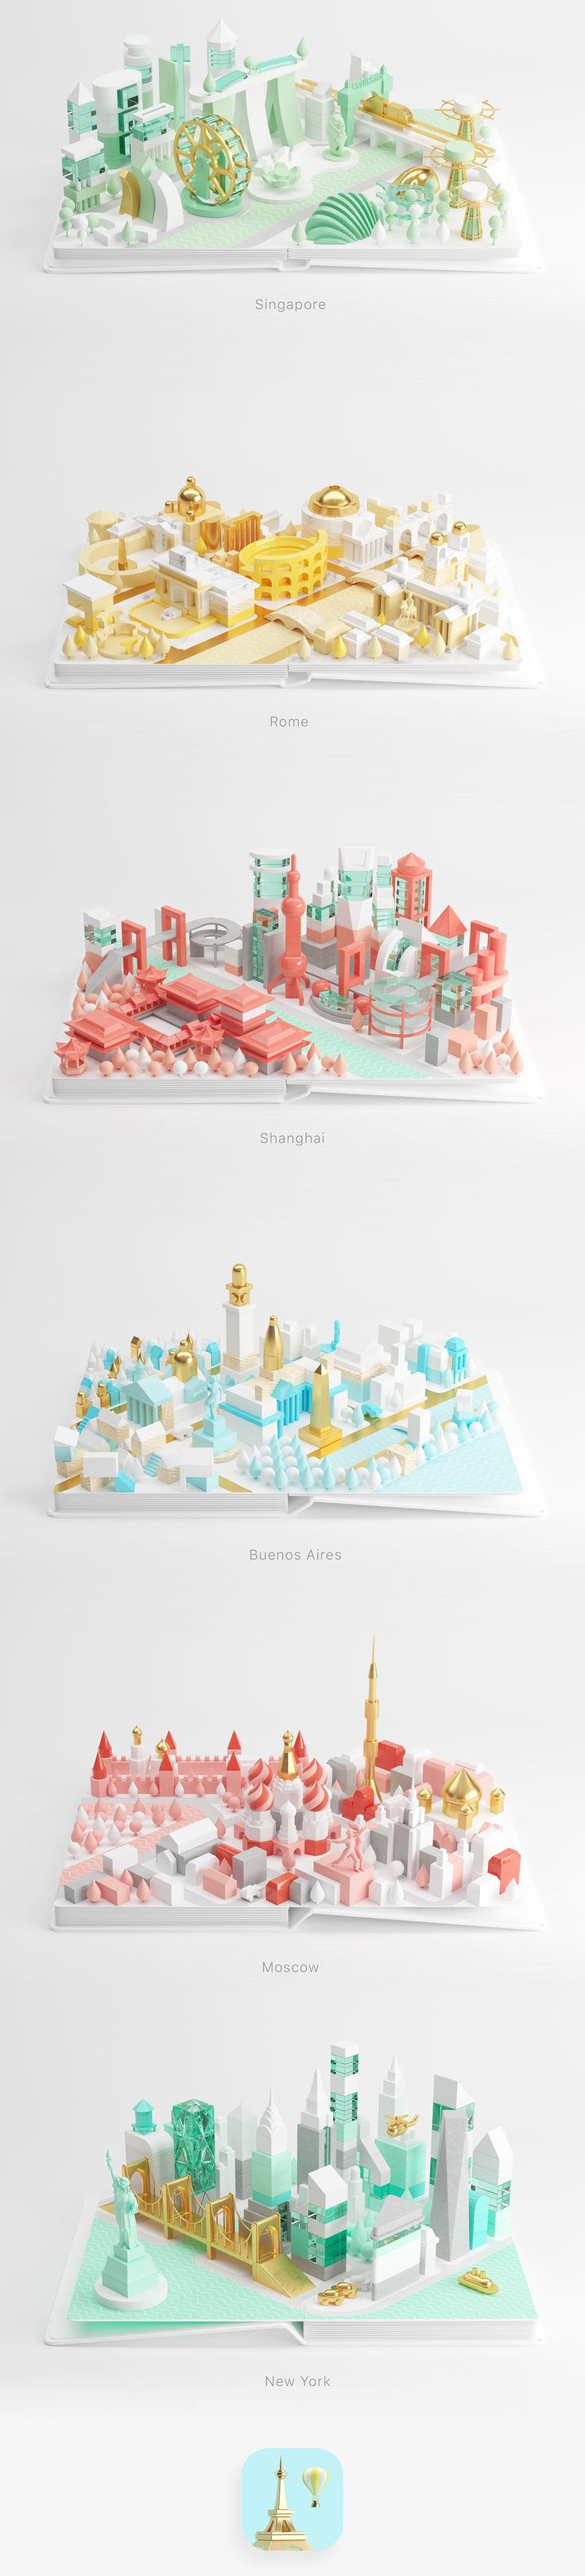 AirPano City Book on Behance